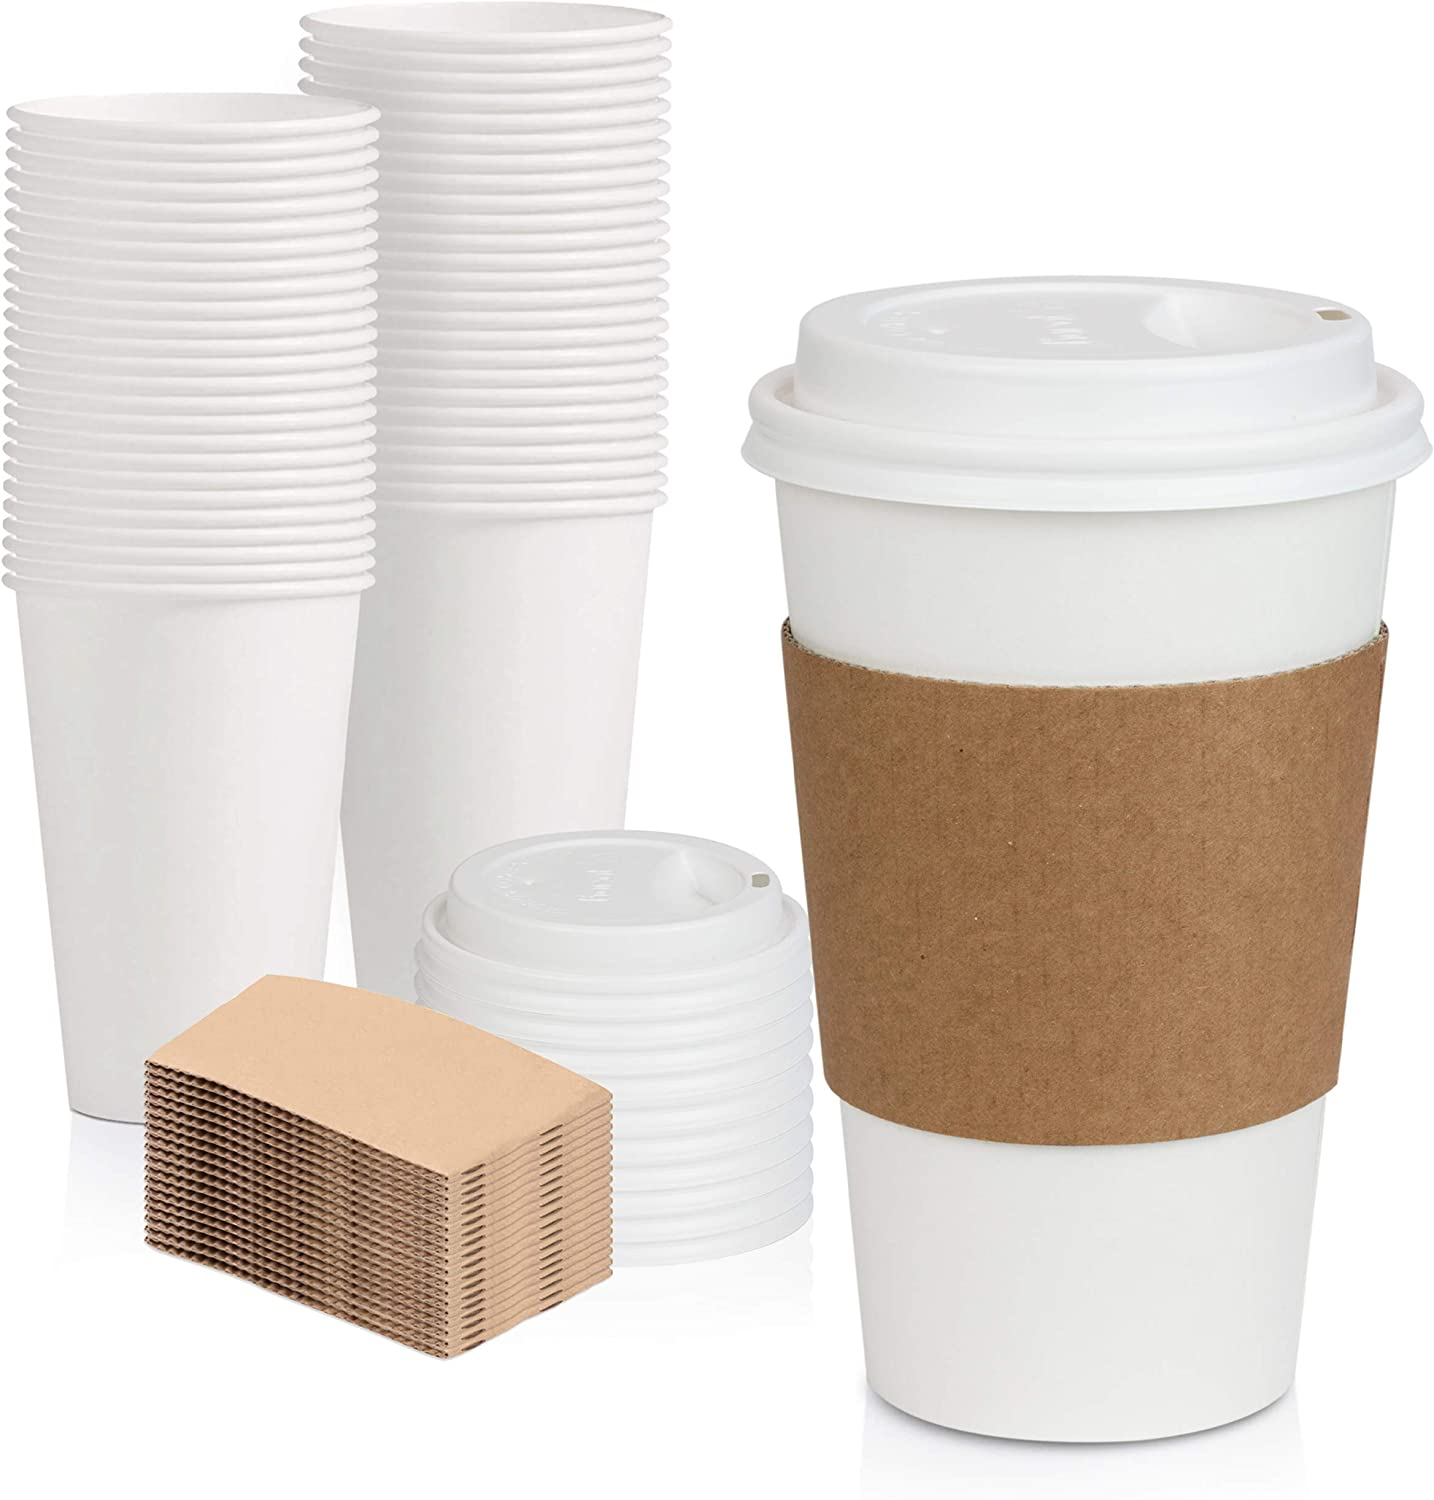 [50 Pack] White Coffee Cups with White Dome Lids and Brown Sleeves - 16oz Disposable Paper Coffee Cups - To Go Cups for Hot Chocolate, Tea, and Other Drinks - Ideal for Cafes, Bistros, and Businesses